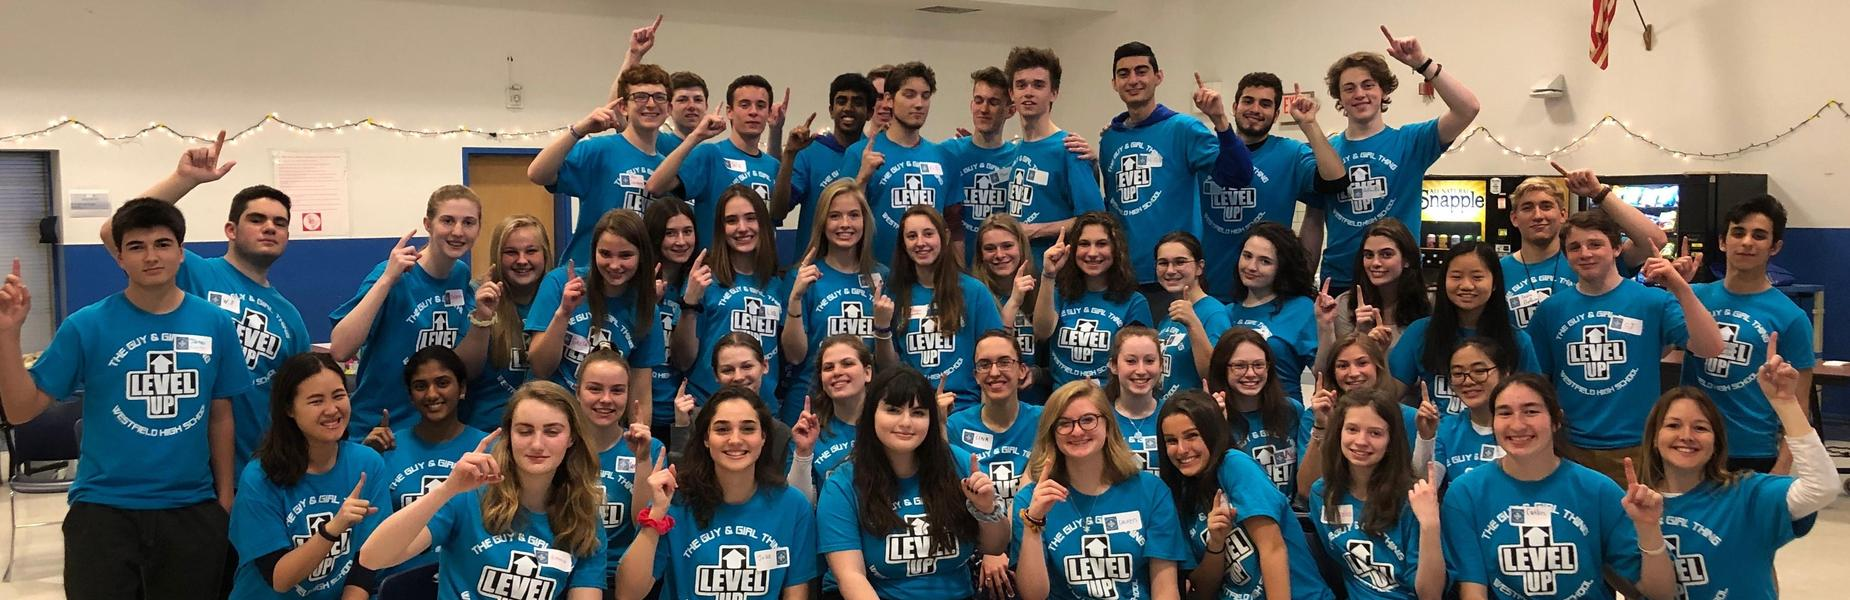 """:  Dubbed the """"Wingmen"""" and """"Cover Girls"""" because they """"take underclassmen under their wings and provide emotional cover,"""" 45 WHS juniors and seniors facilitated the annual Guy & Girl Thing at Westfield High School on March 22."""